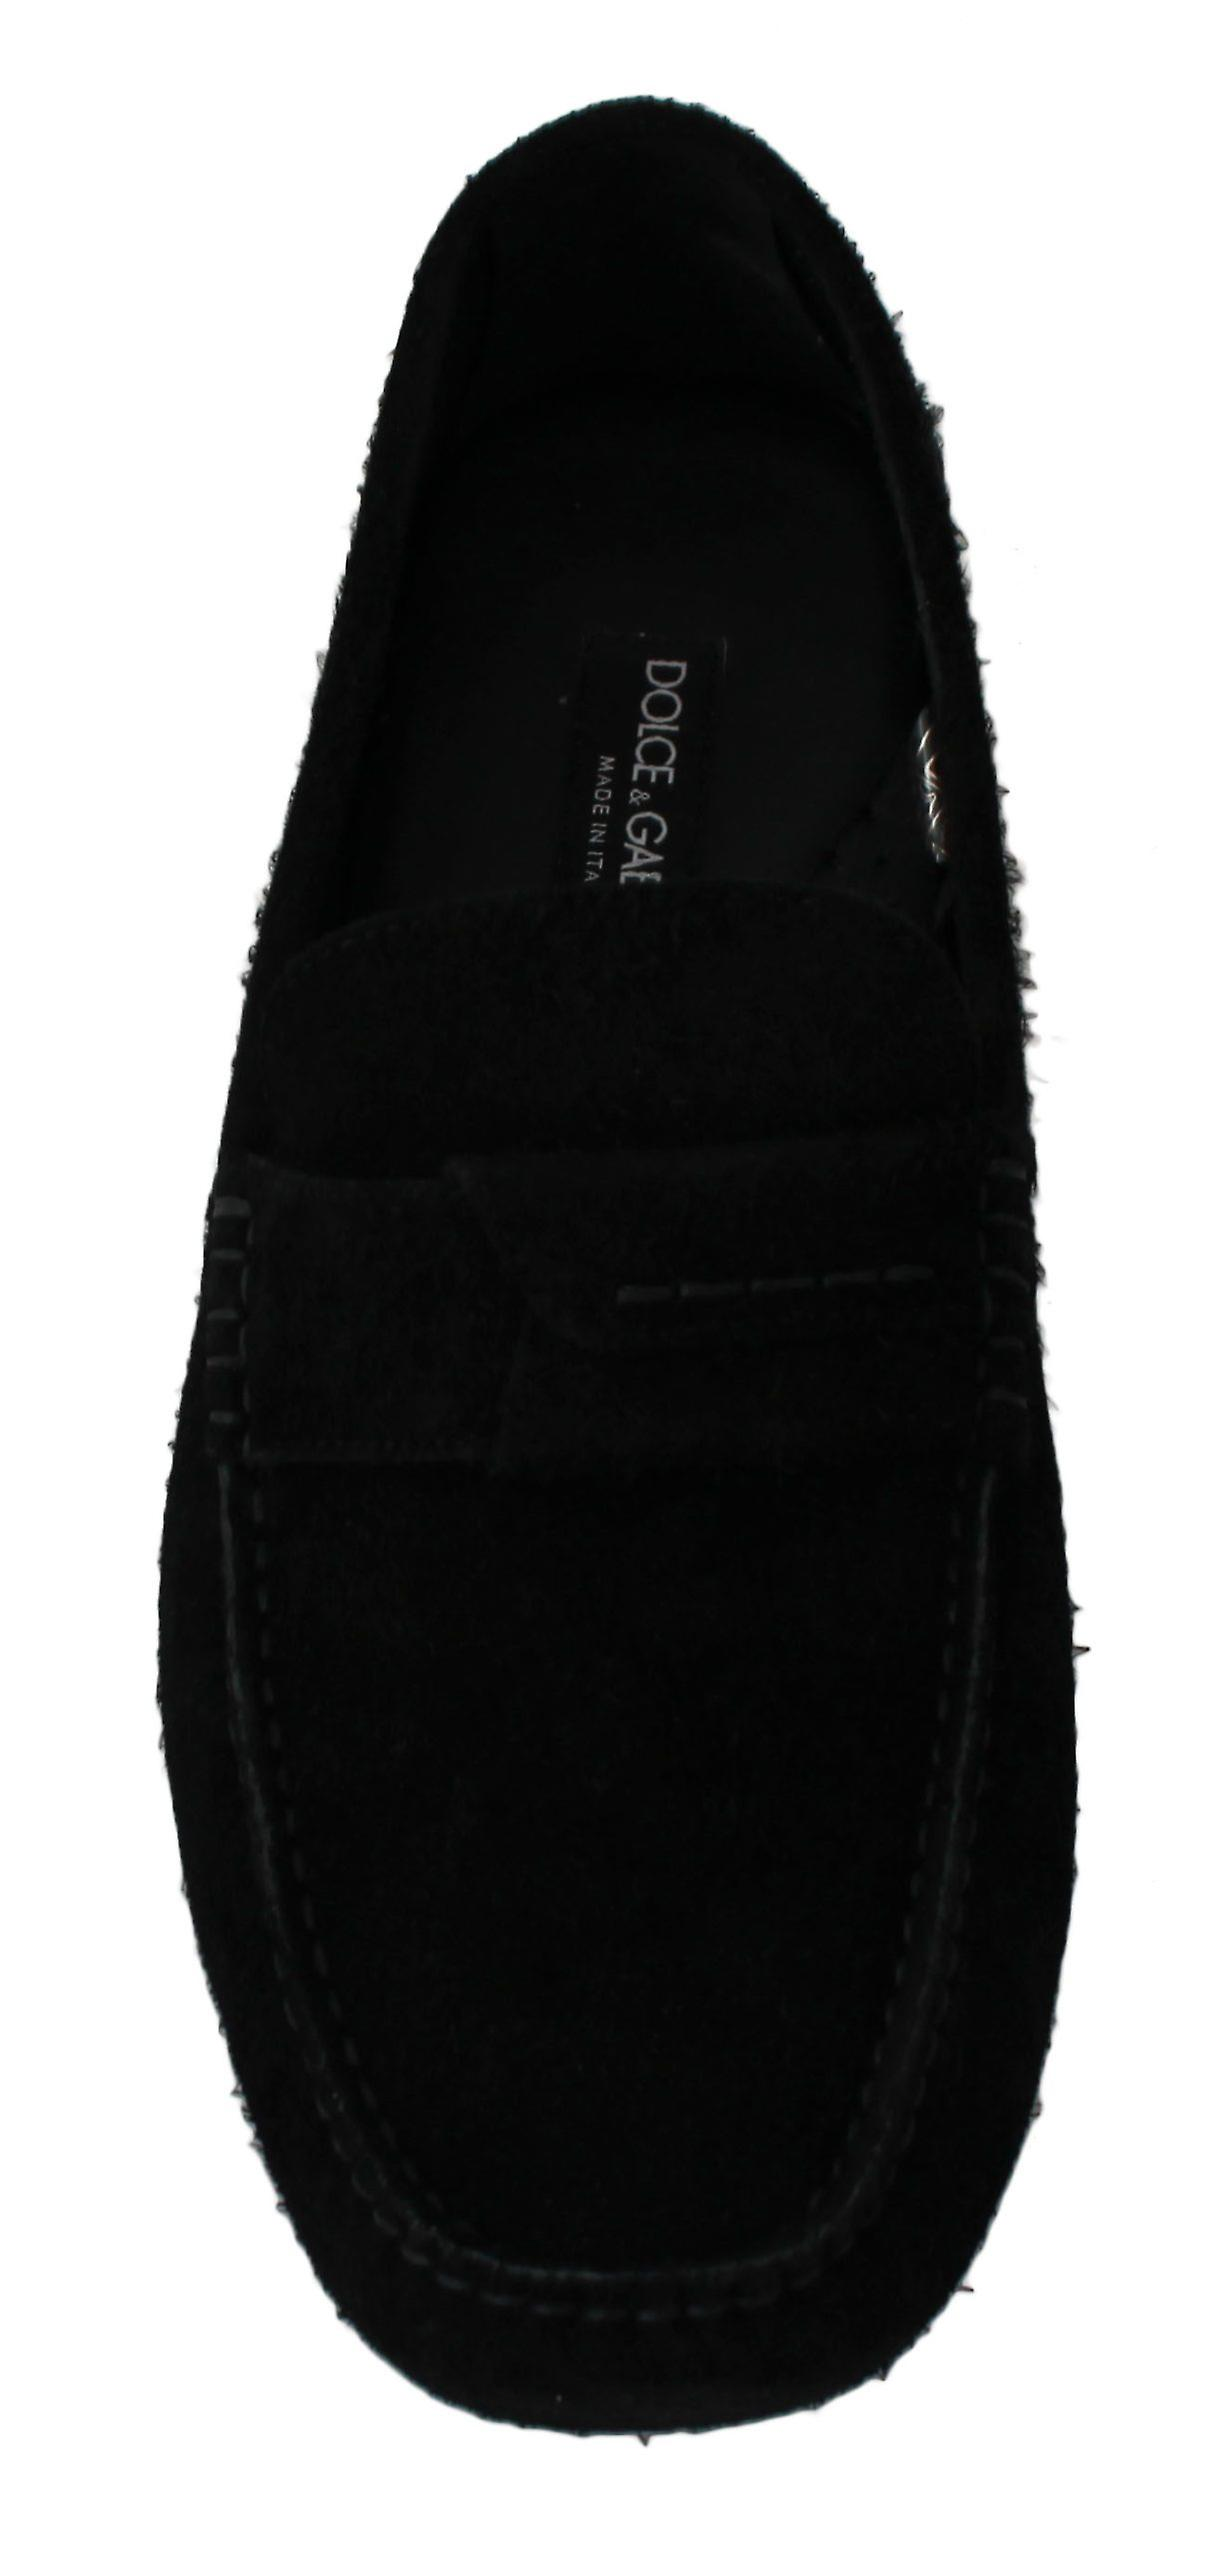 Dolce & Gabbana Black Suede Flat Loafers Slip Ons Shoes Mv2507-45